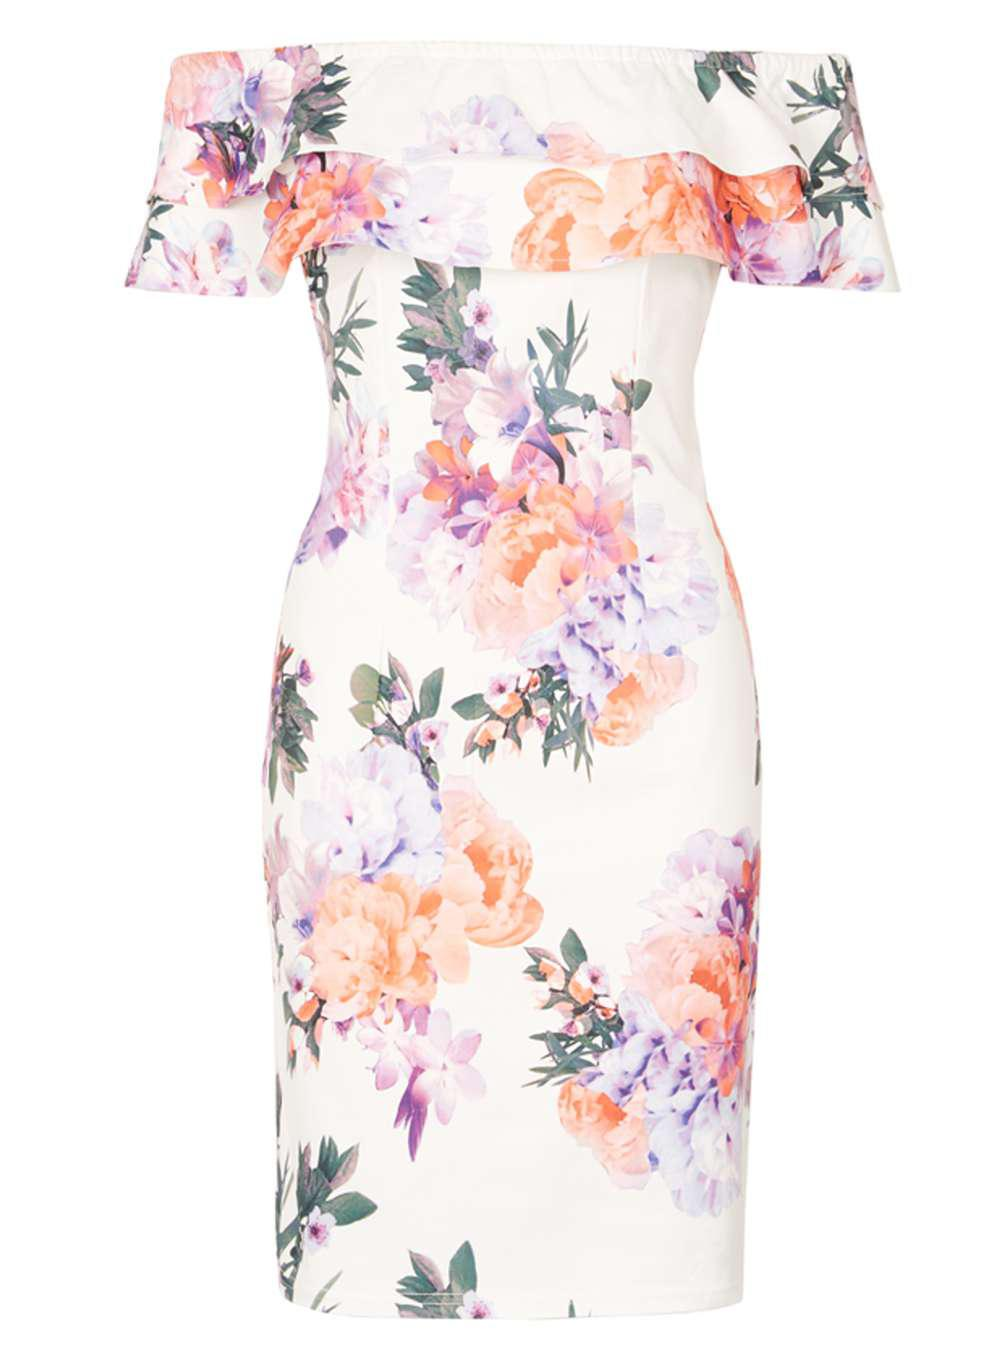 Dorothy Perkins Womens *Izabel London Overlay Bodycon Dress- Genuine For Sale Outlet 2018 New lMZcn6qWB